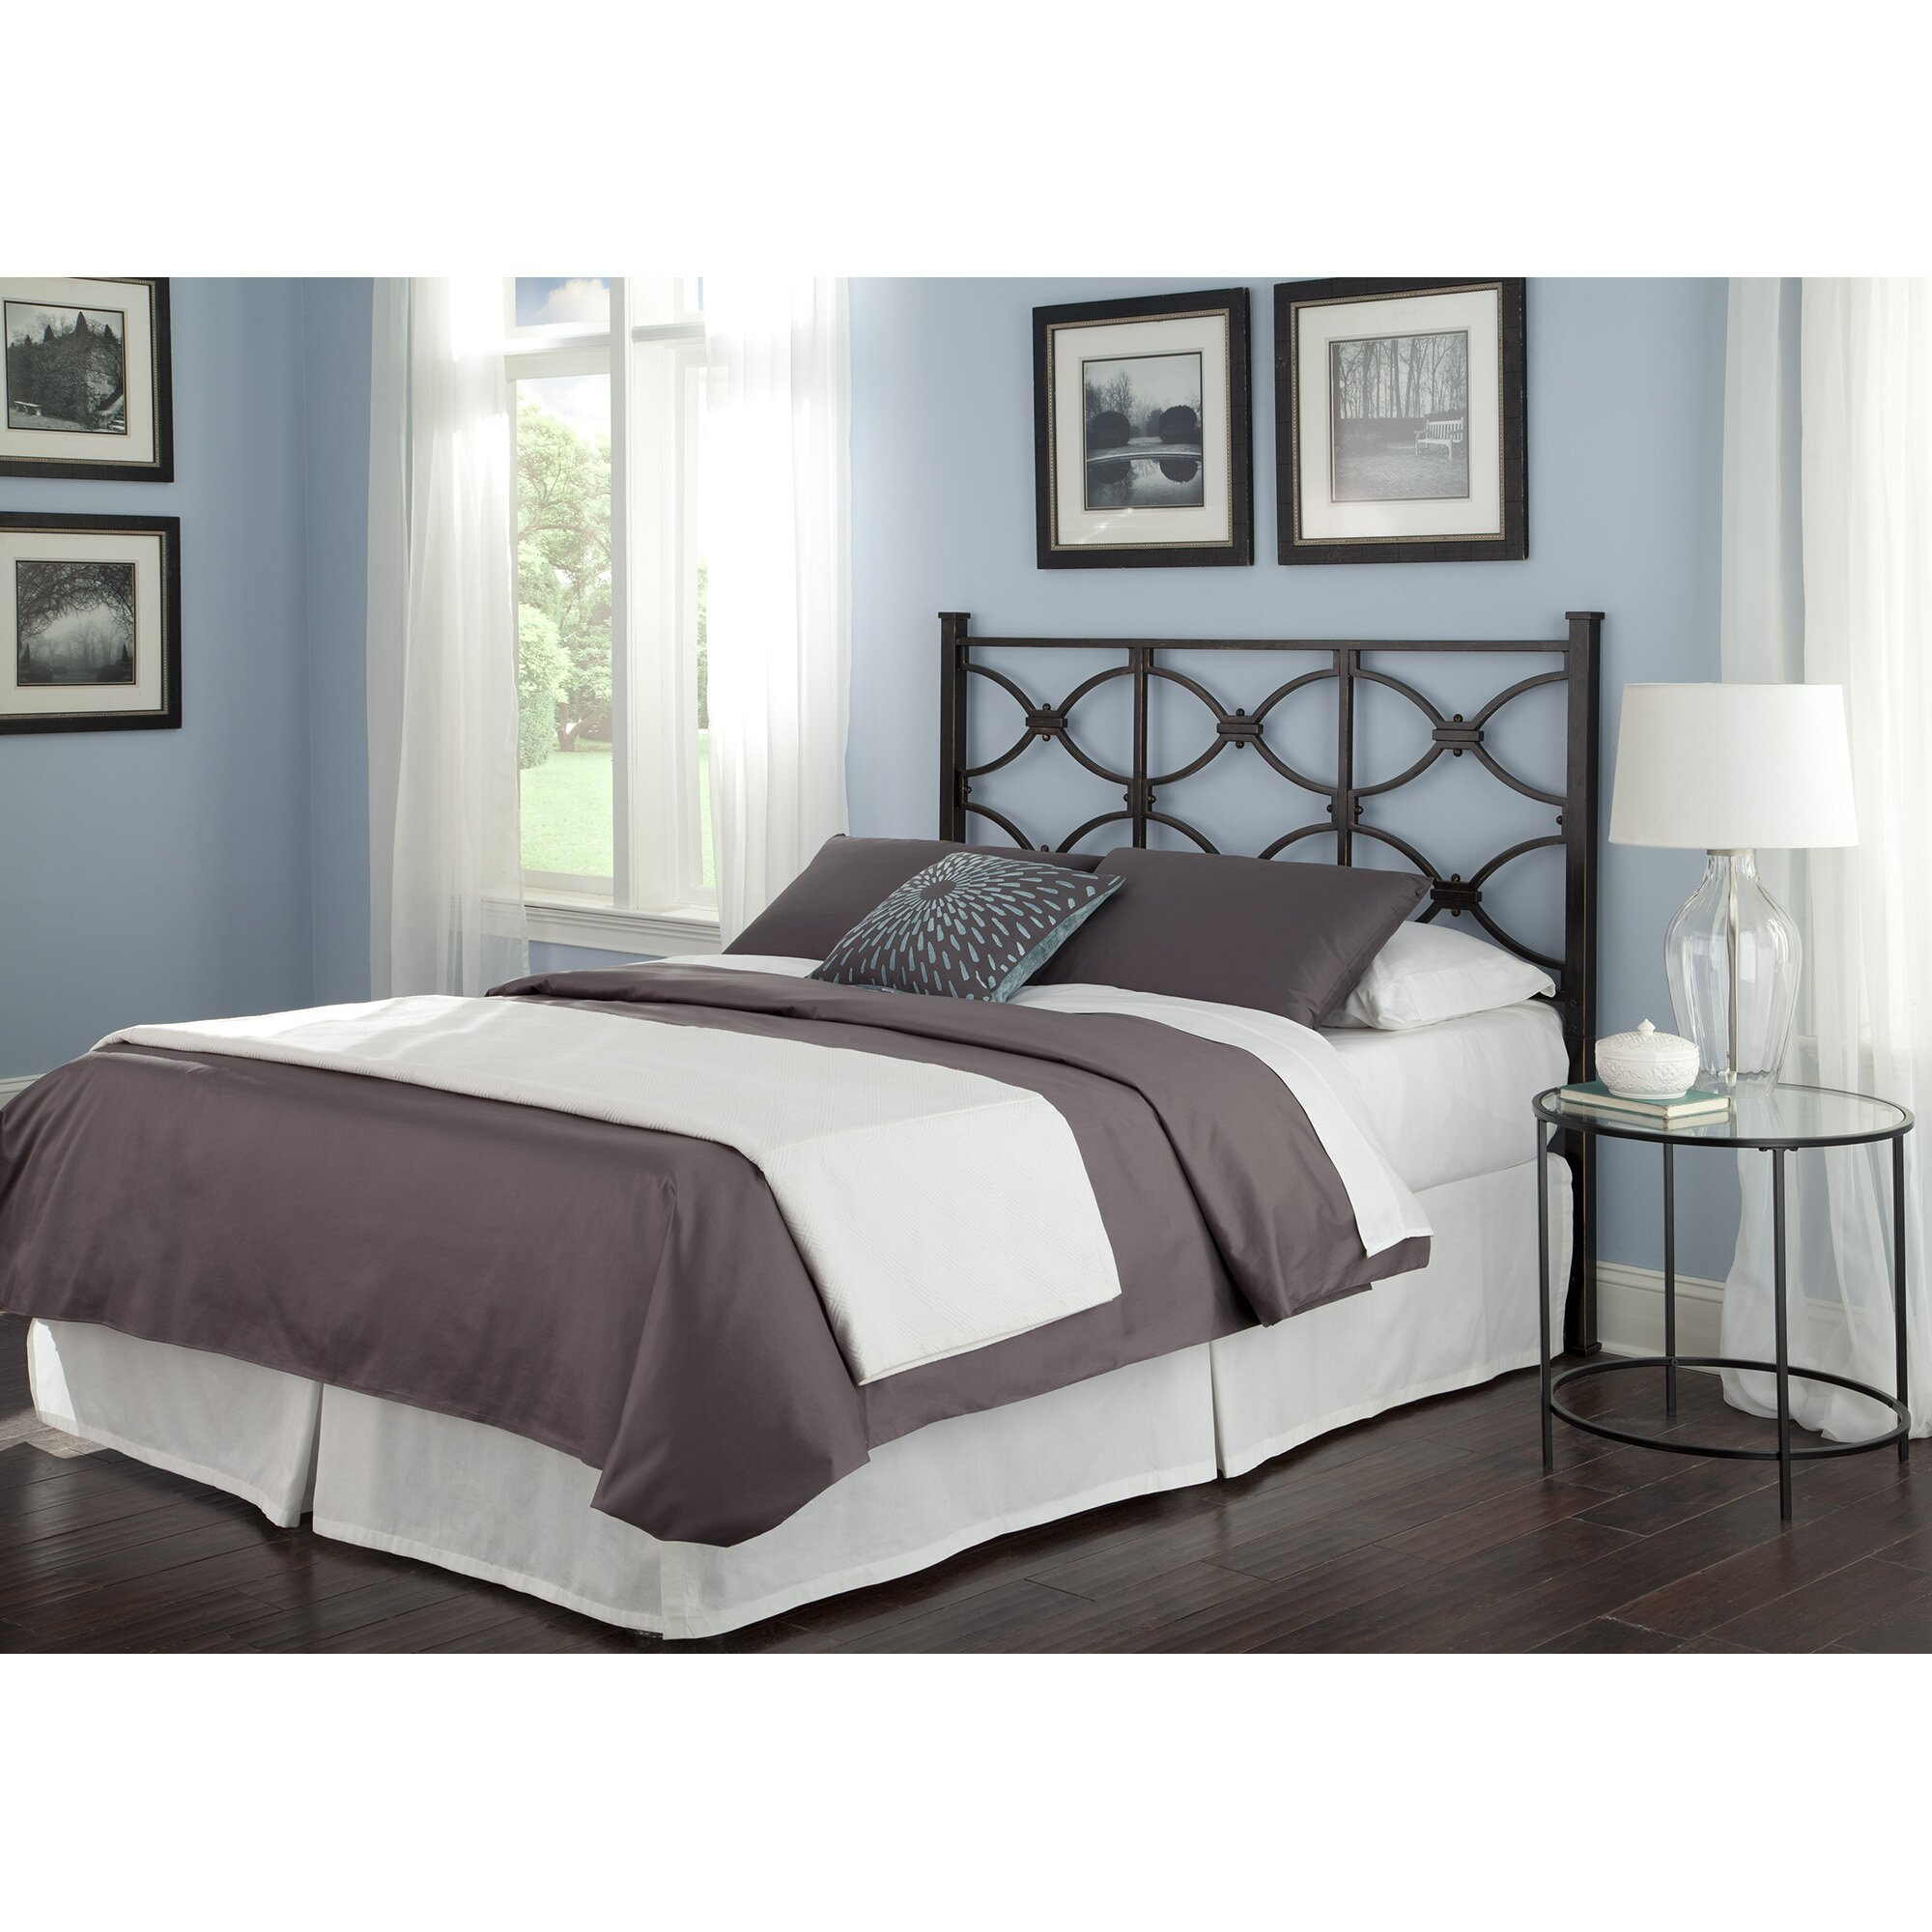 Fashion bed group marlo california king steel headboard California king headboard